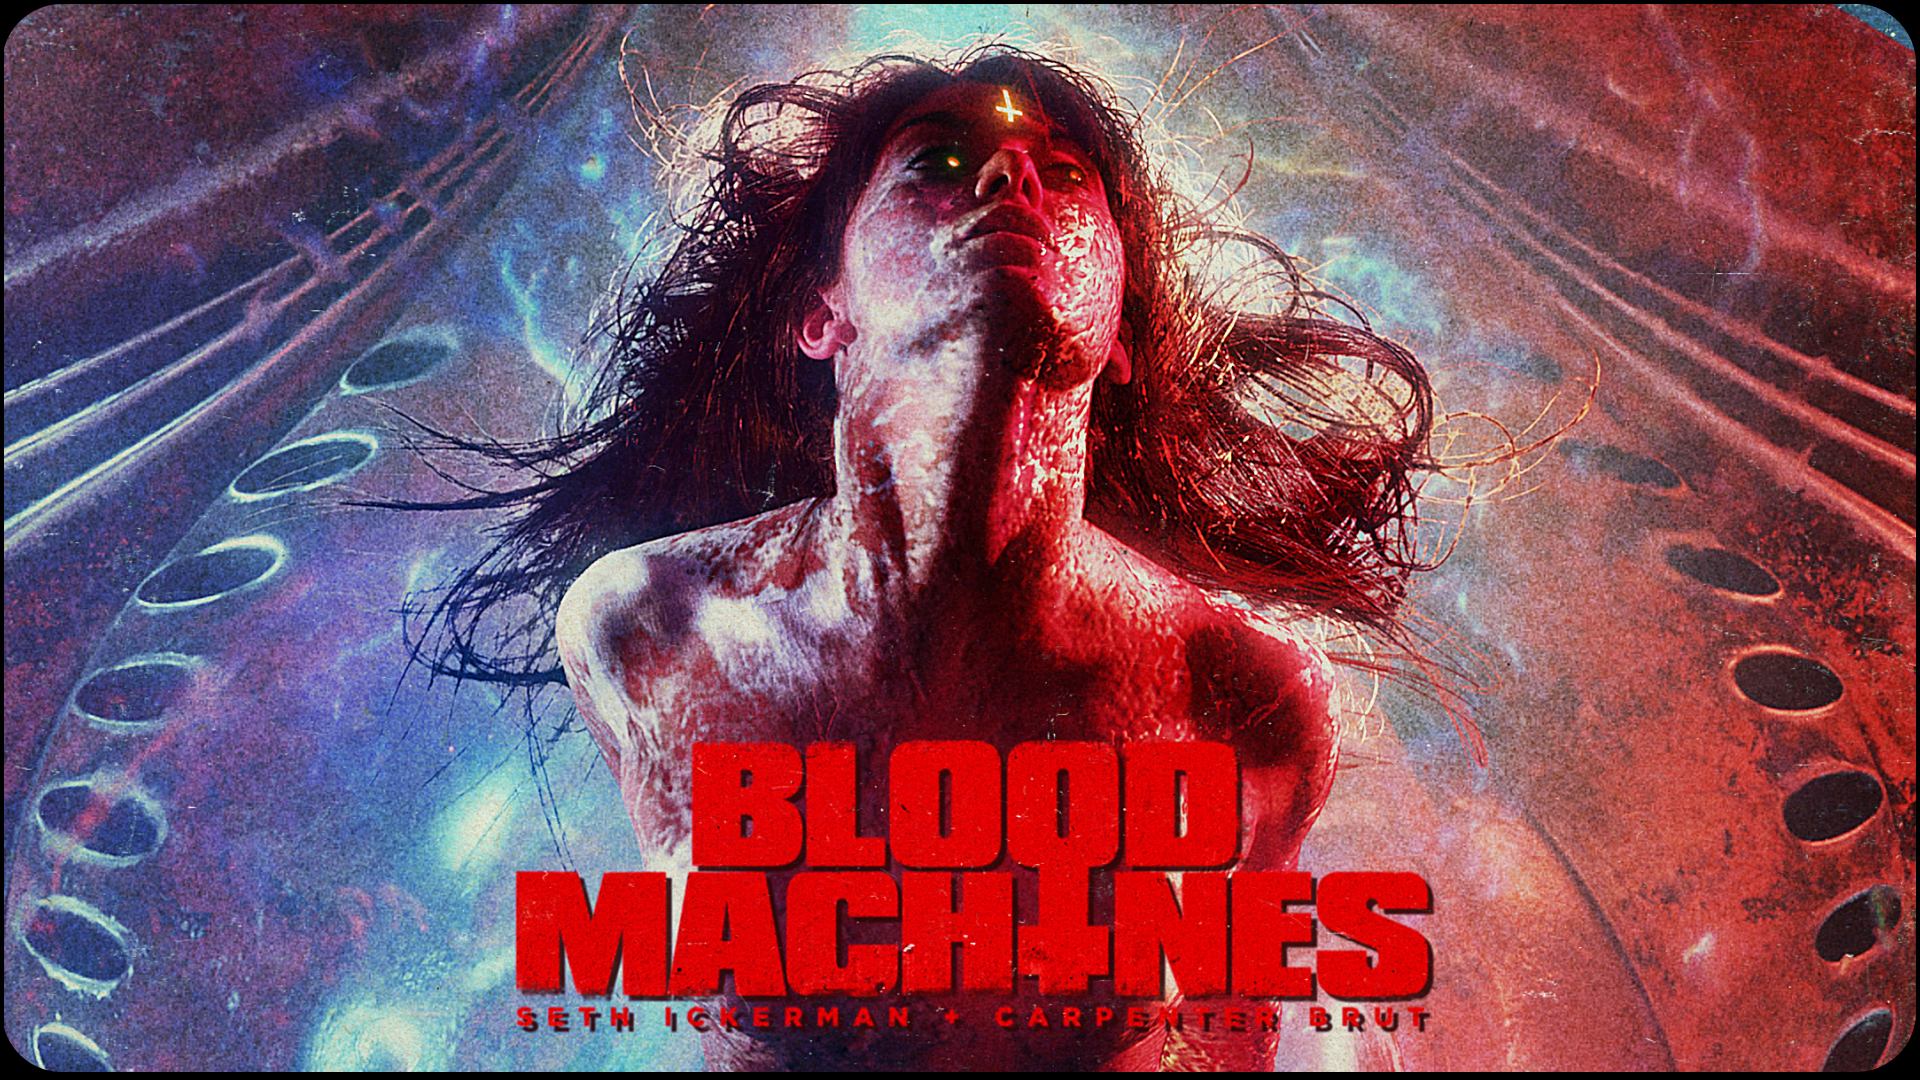 Ecco il trailer di Blood Machines, nuovo film di Seth Ickerman e Carpenter Brut